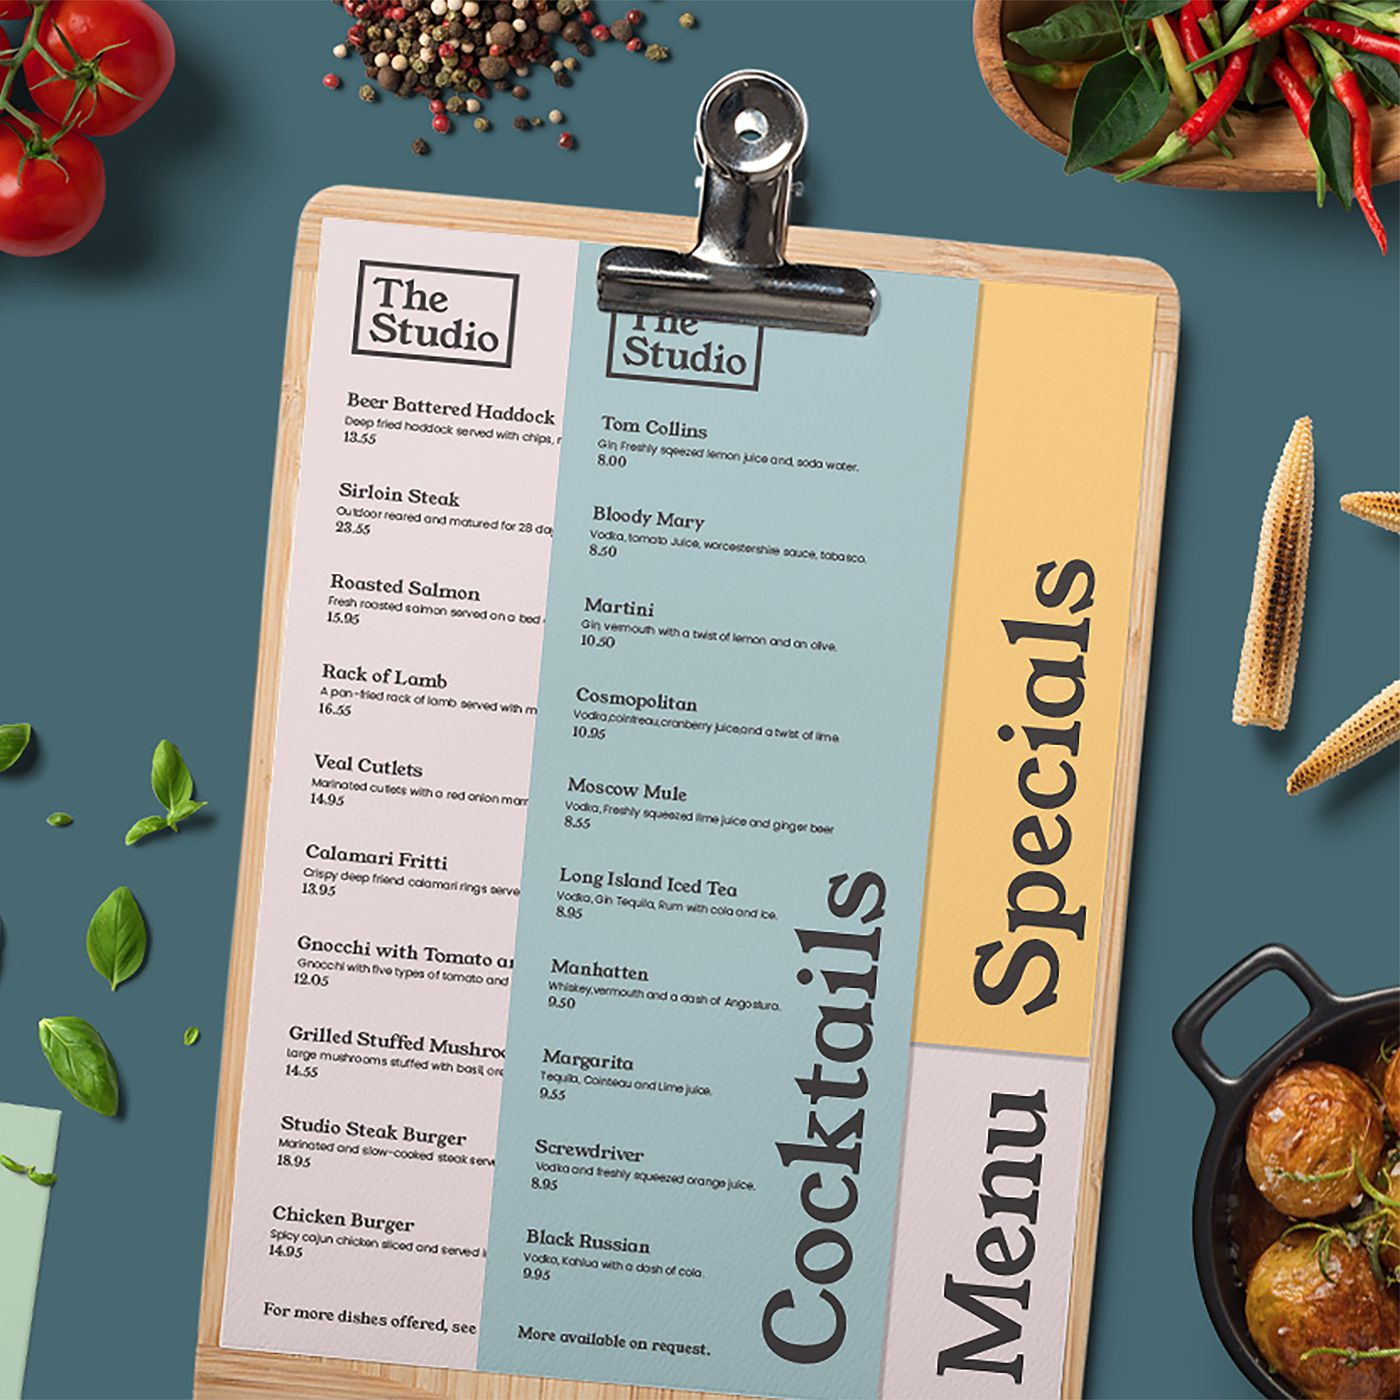 the studio - a cool and contemporary menu design from the print